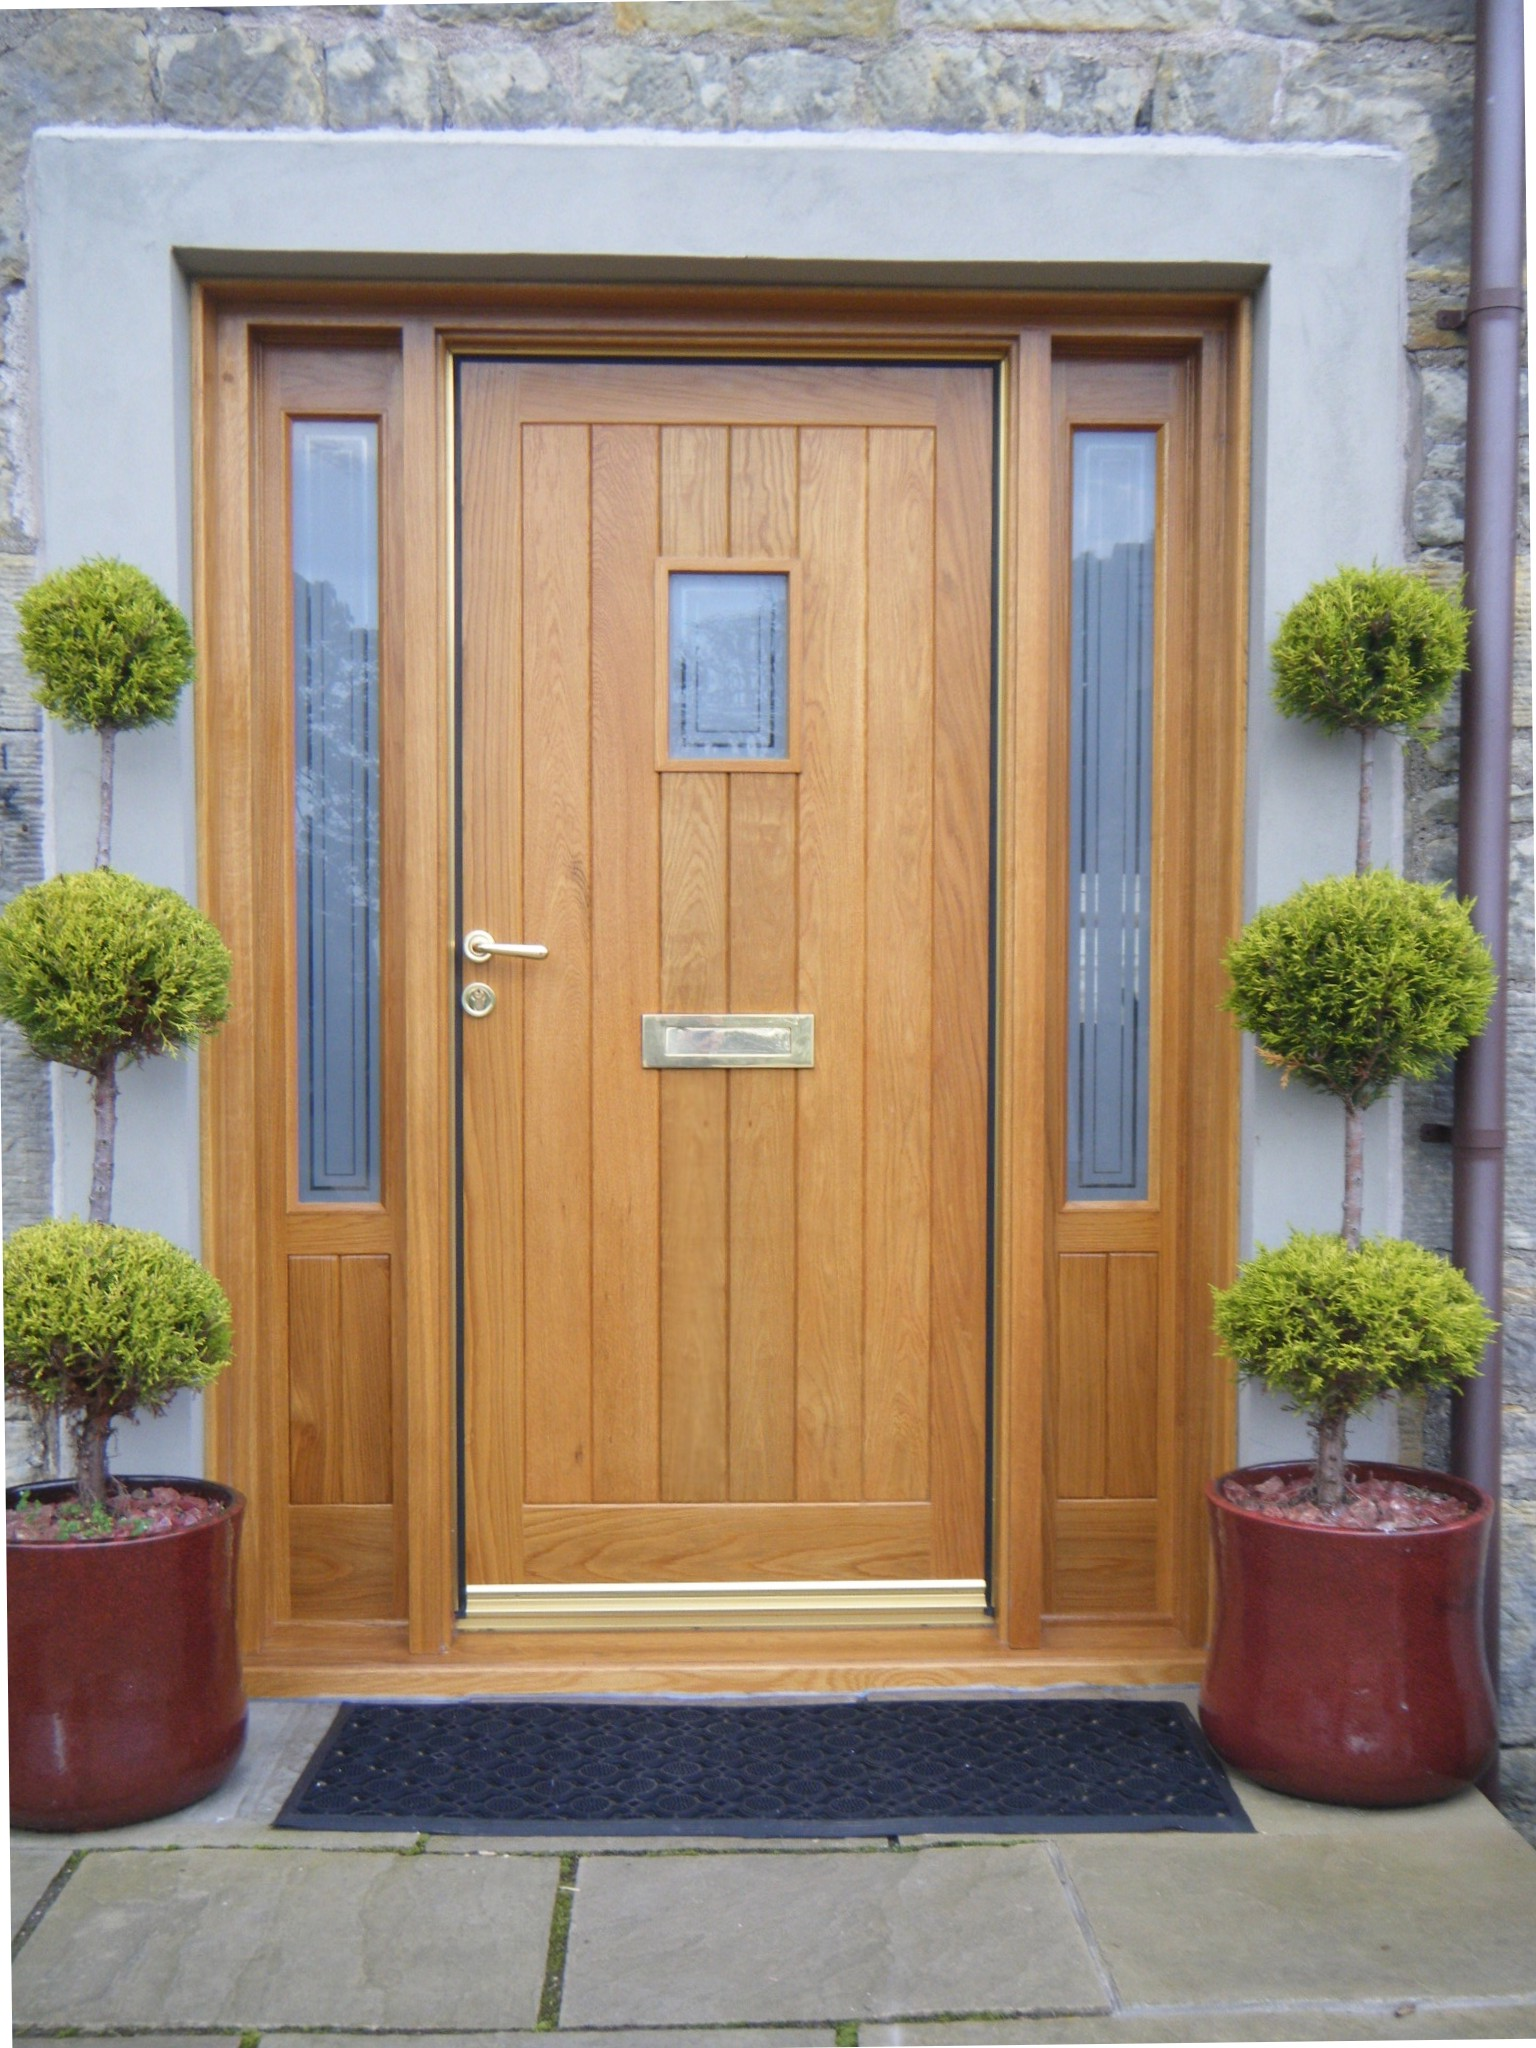 Doors External amp London Hardwood Door hardwooddoors